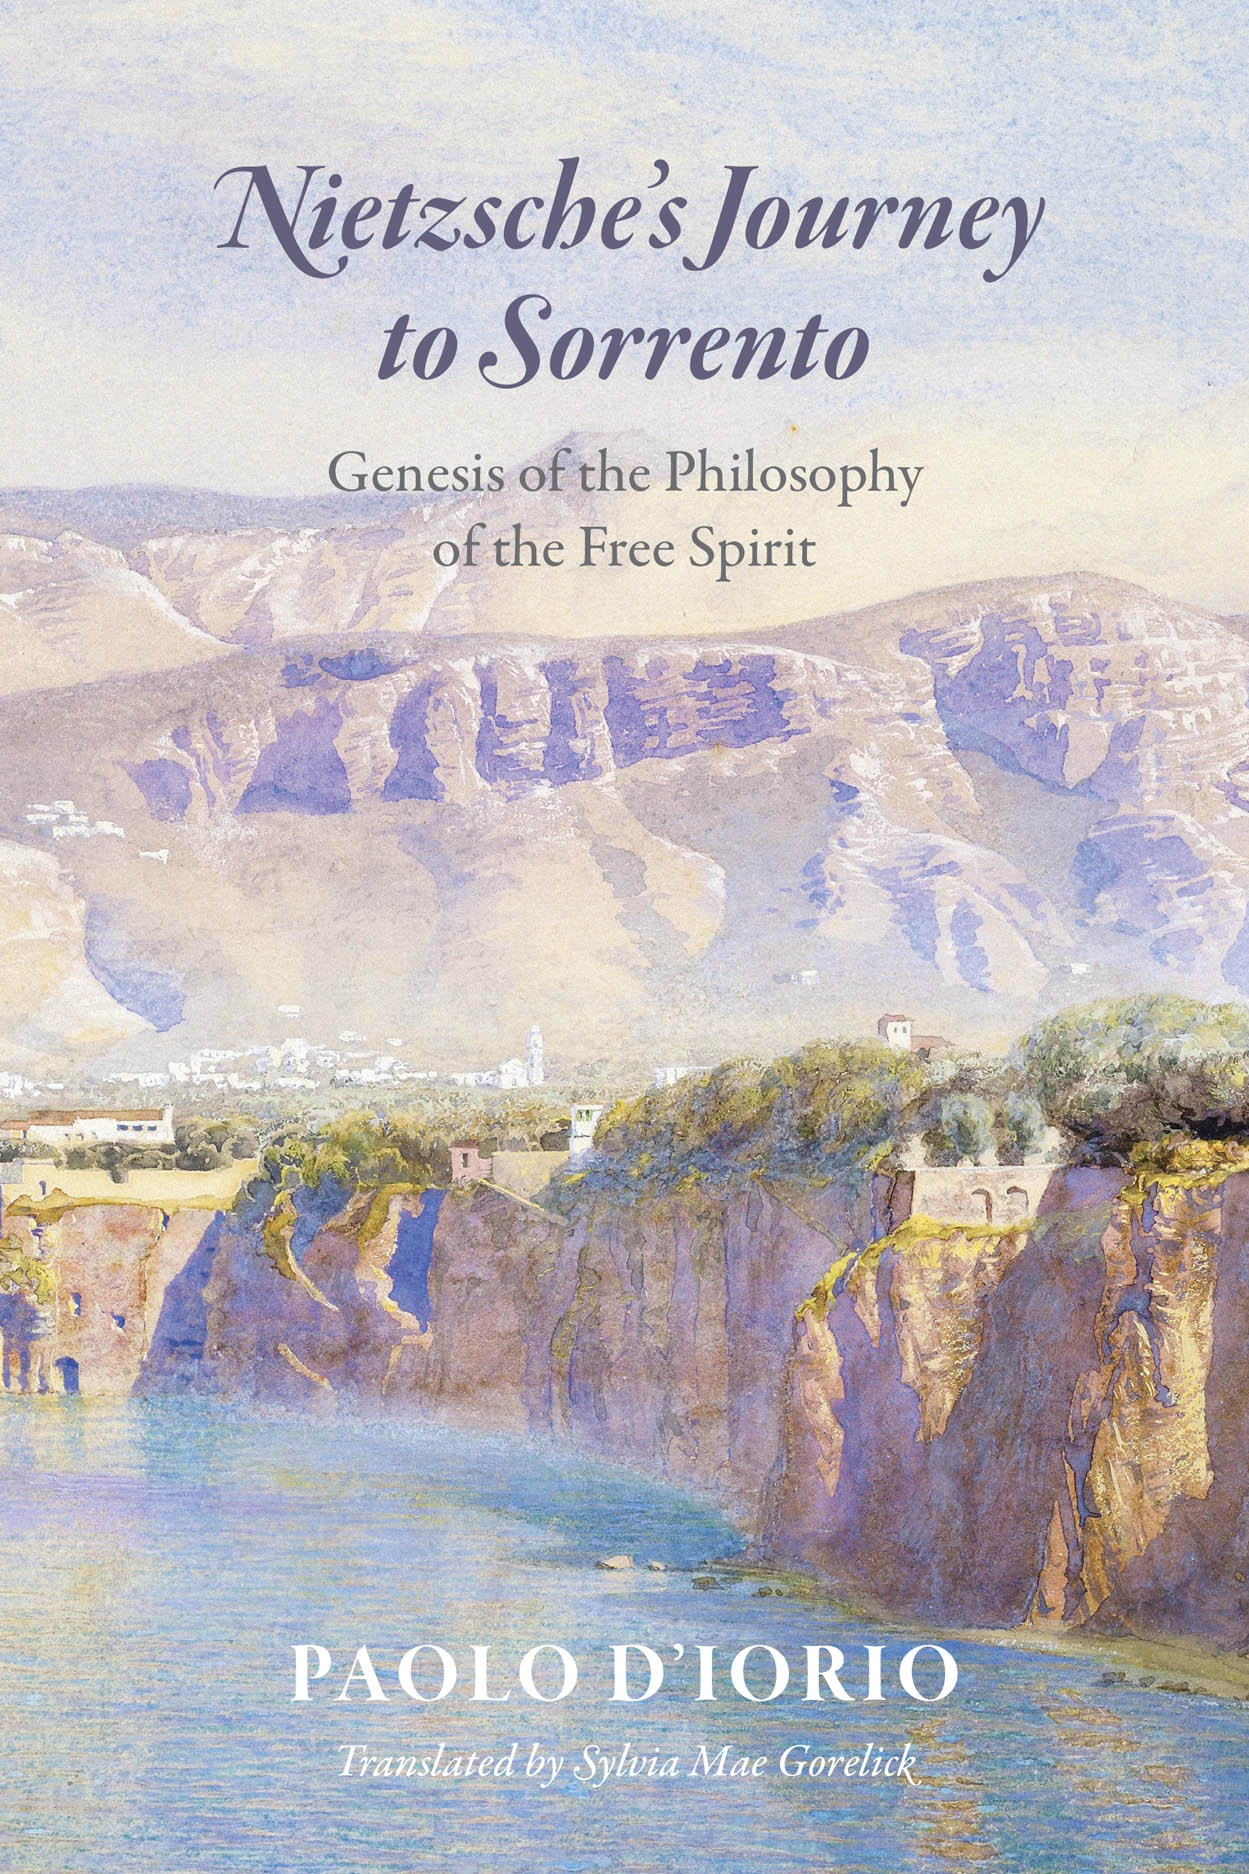 Nietzsche's Journey to Sorrento: Genesis of the Philosophy of the Free Spirit